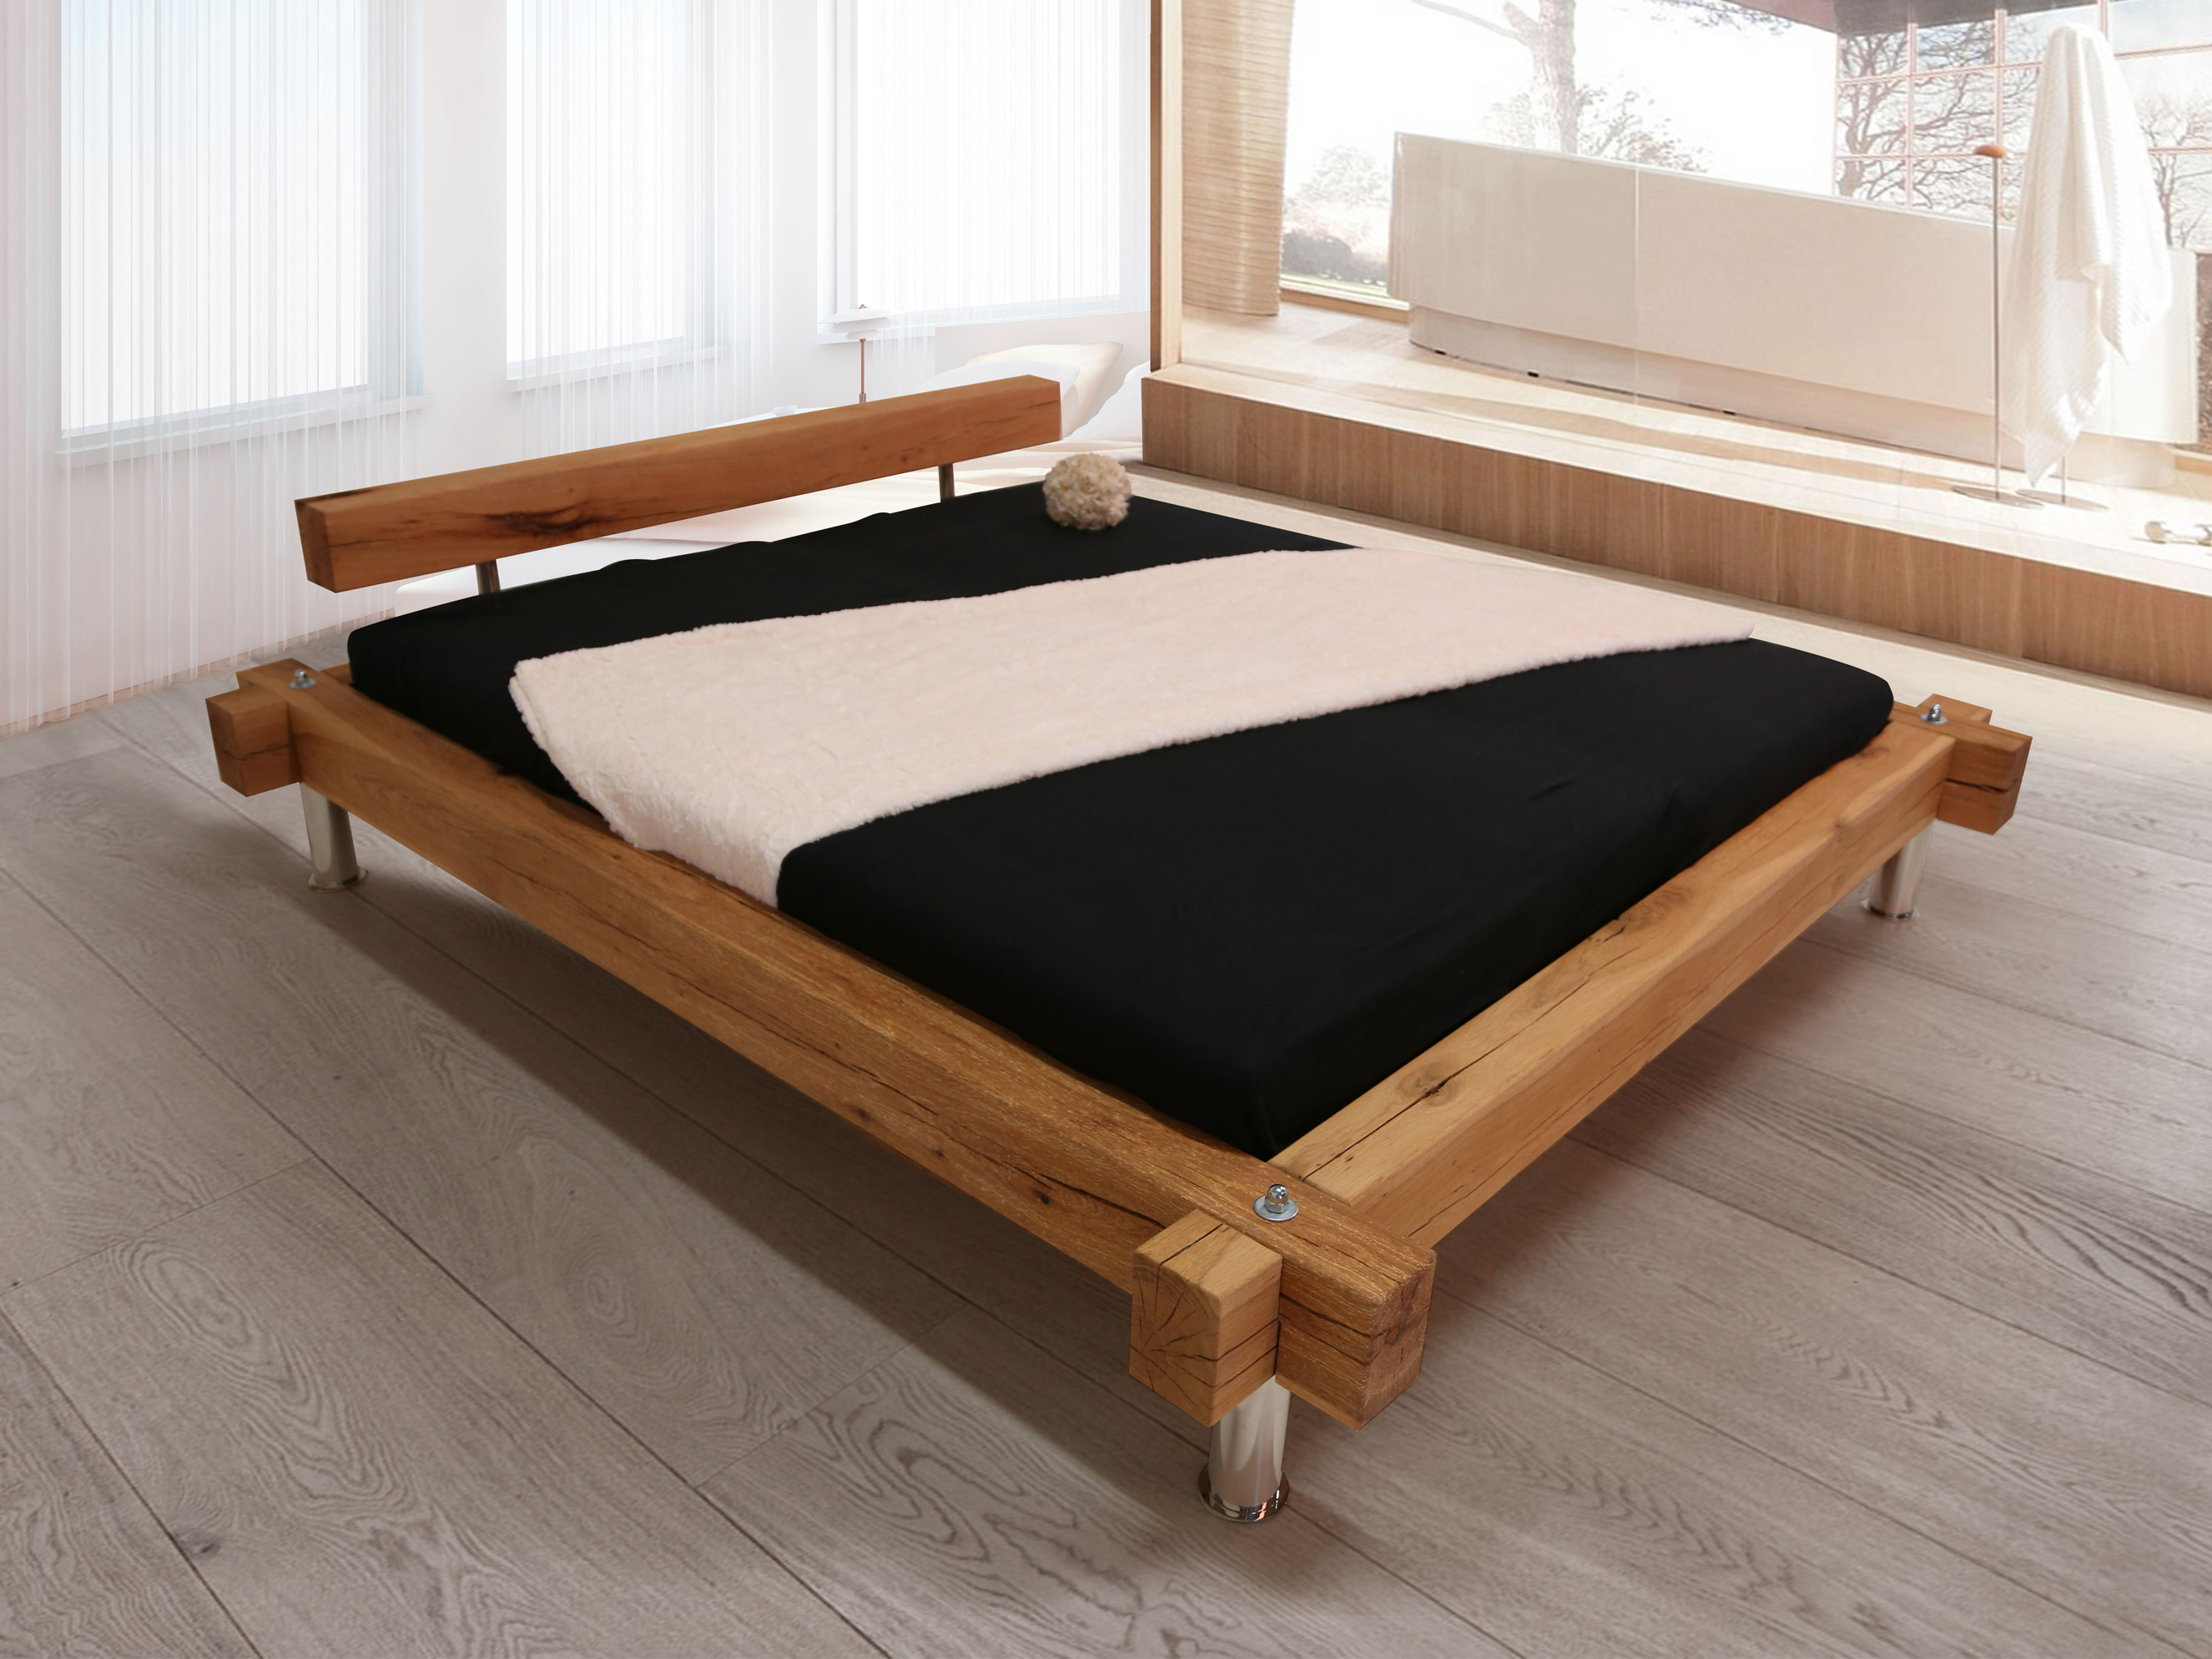 panda doppelbett massivholzbett sumpfeiche ge lt 140 x 200 ge lt duo. Black Bedroom Furniture Sets. Home Design Ideas